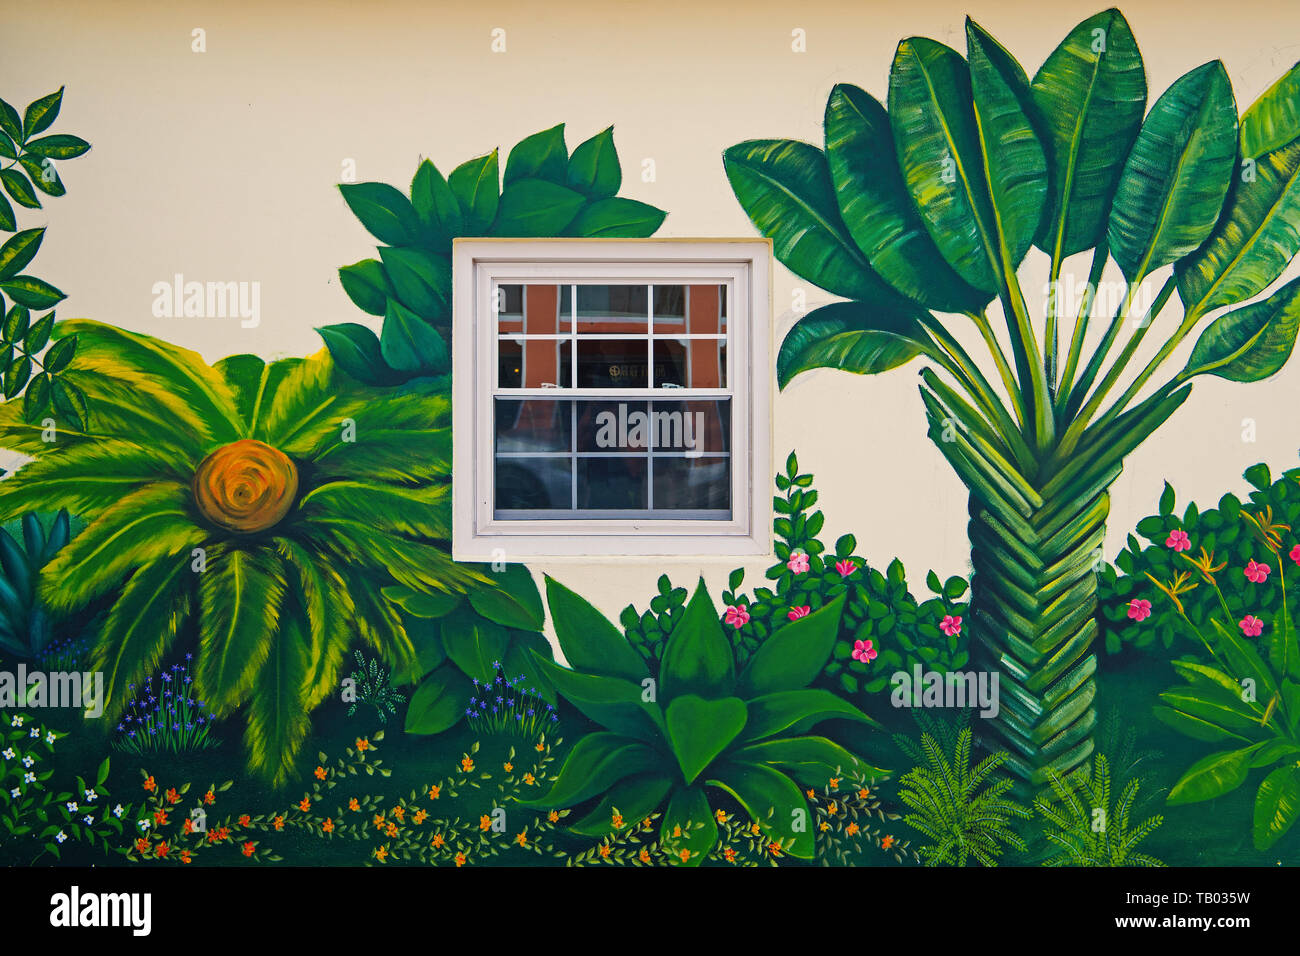 Garden Wall Art High Resolution Stock Photography and Images - Alamy